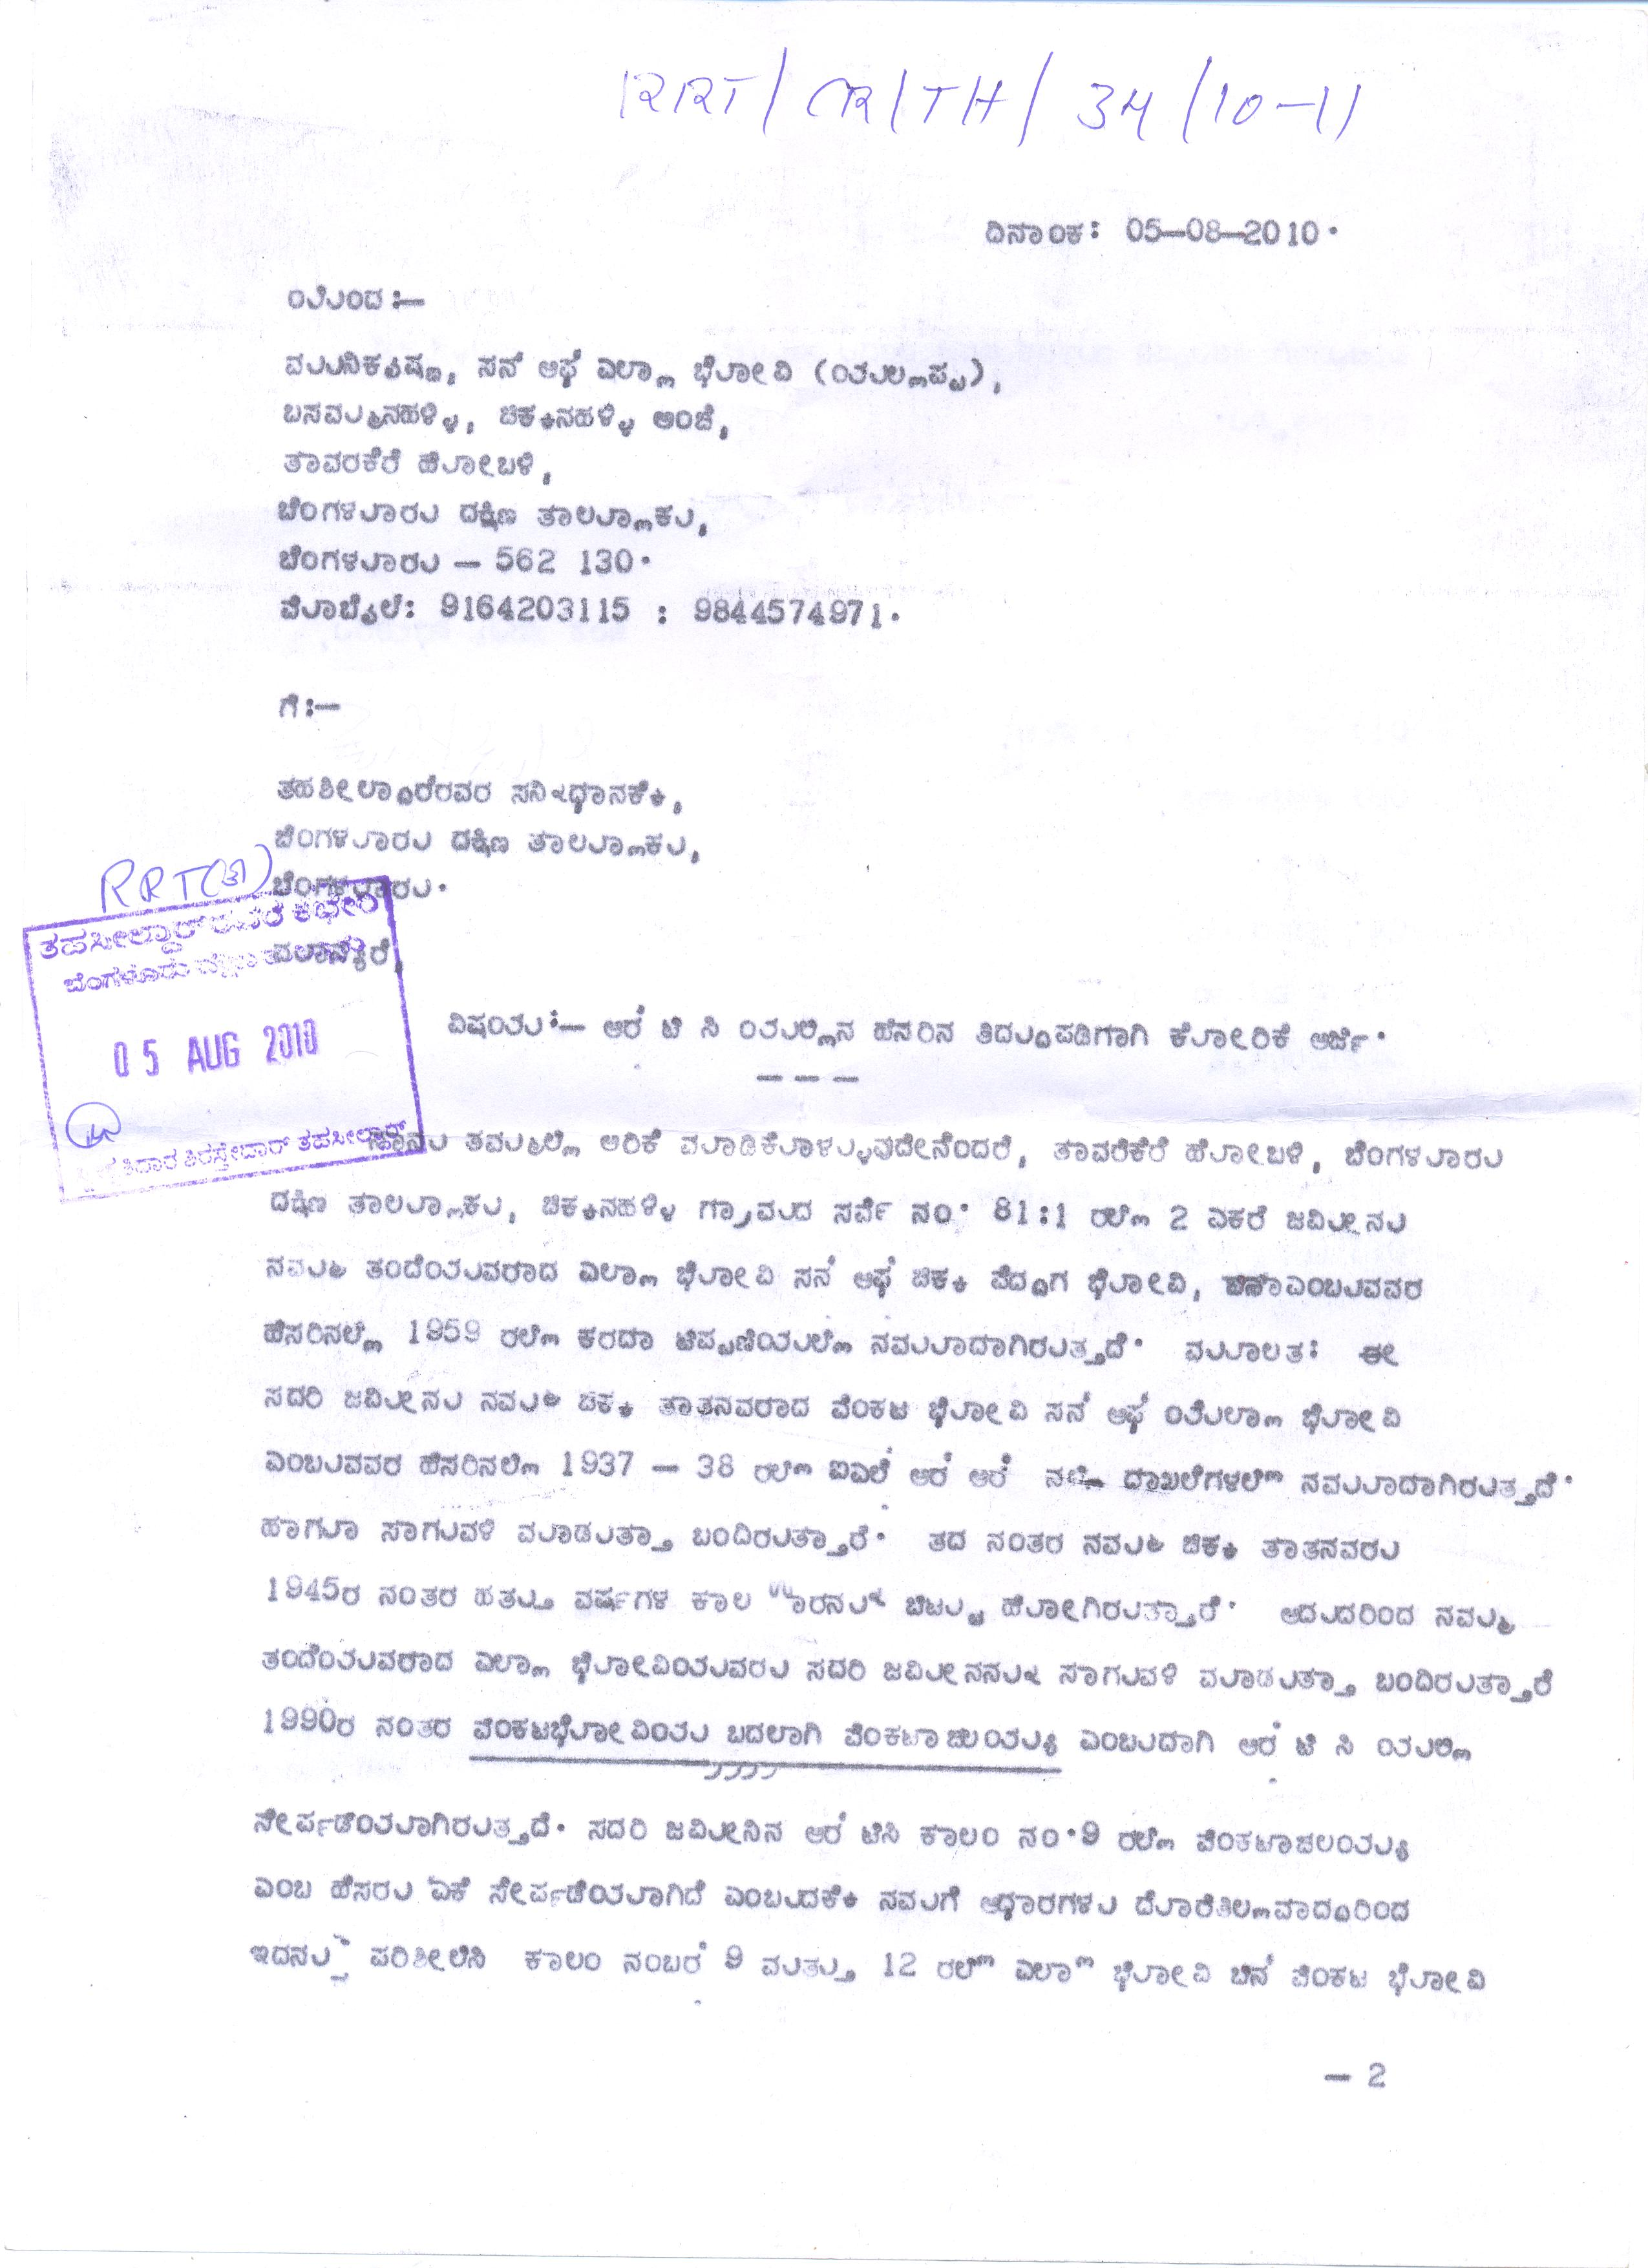 Details Of The Document Inspection Samples Required Sub